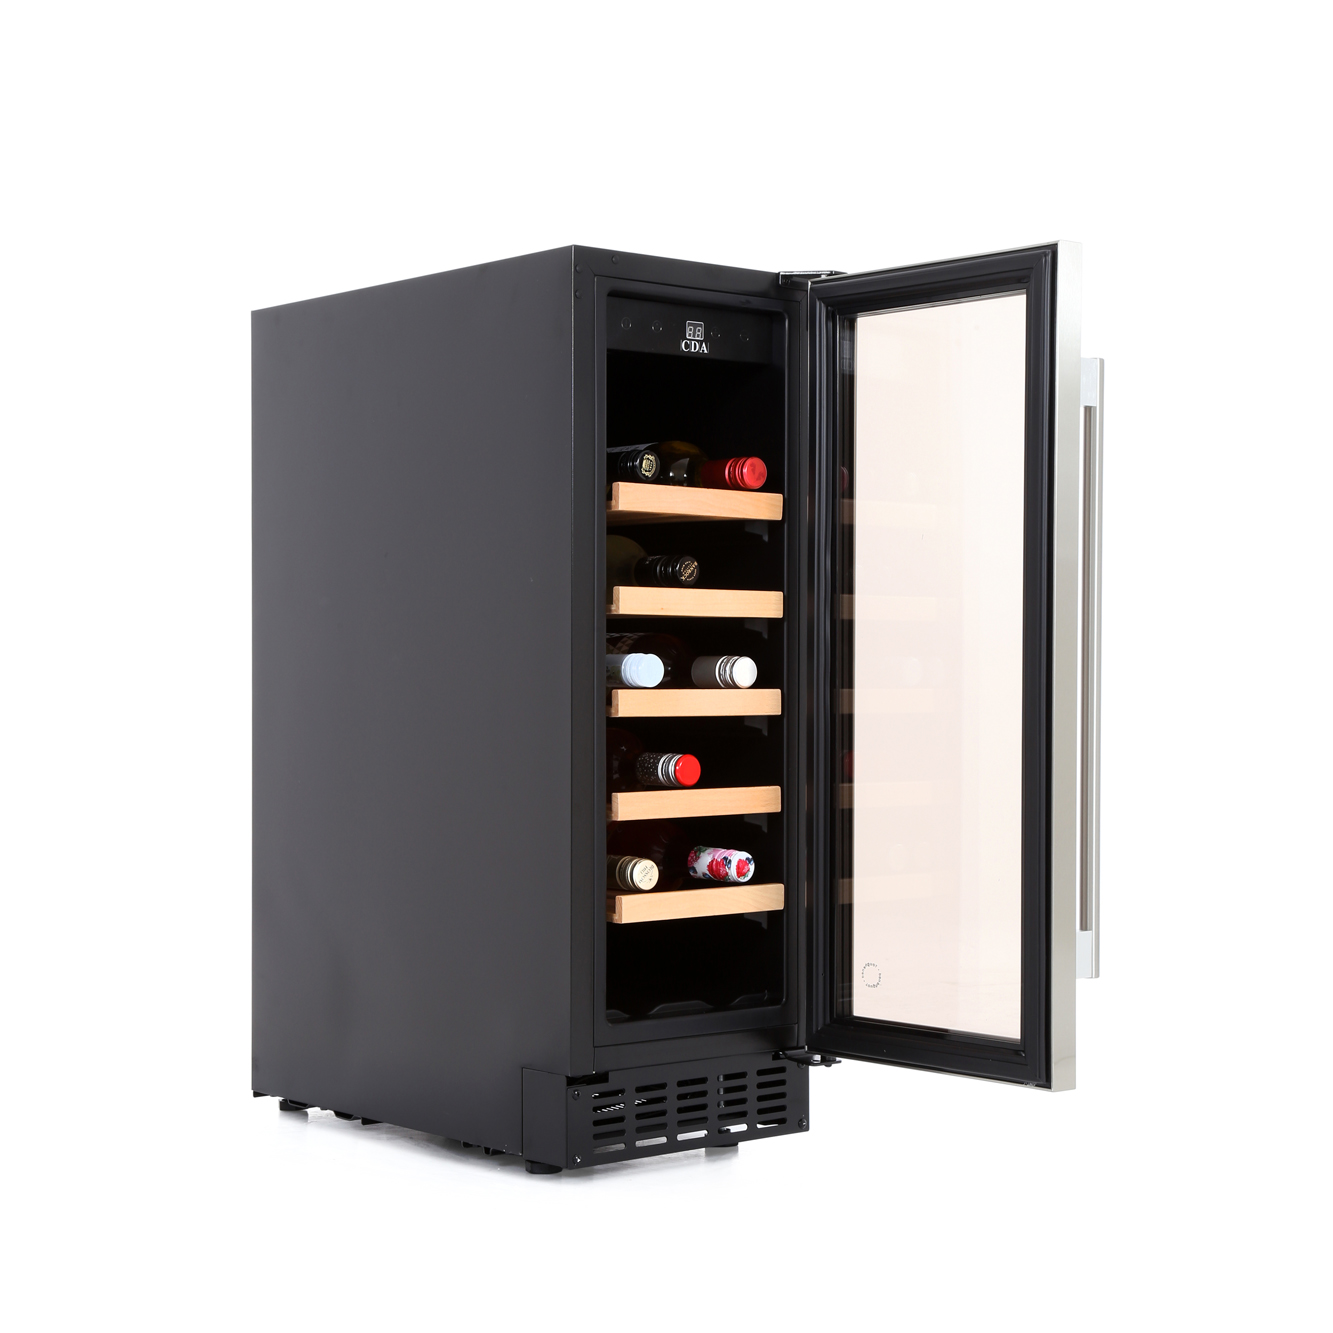 Buy Cda Fwc303ss Wine Cooler Stainless Steel Marks